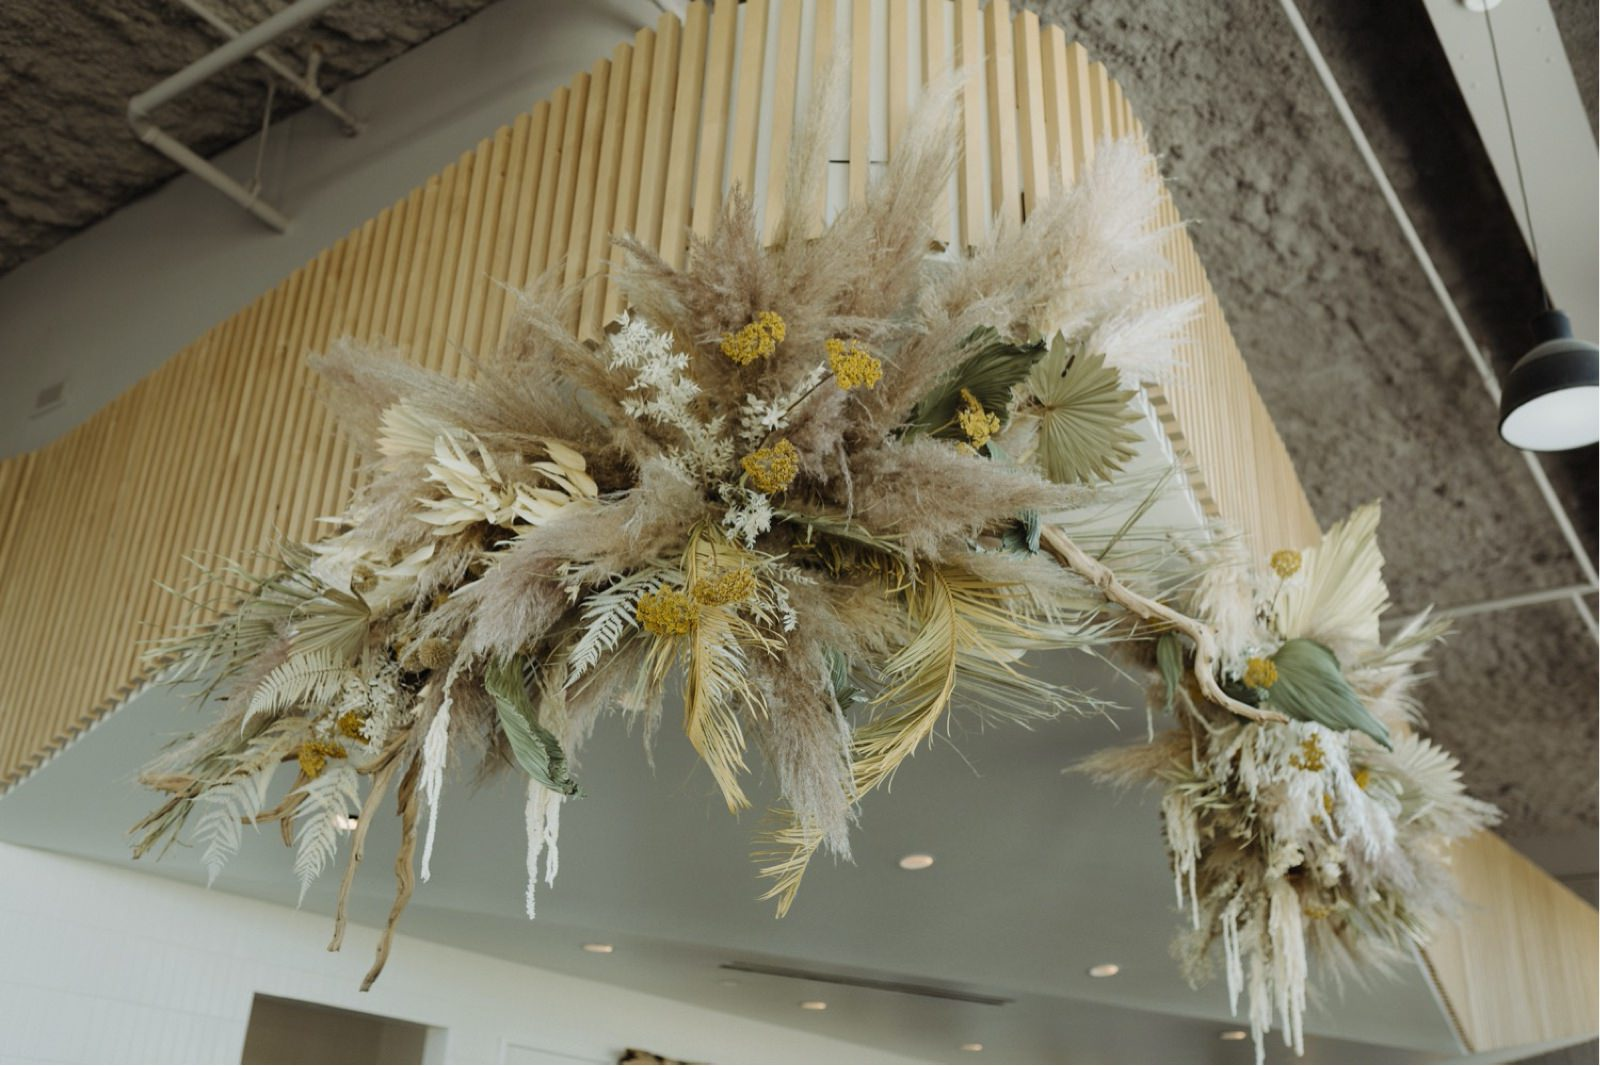 Mounted overhead pampas grass and textured palm floral arch at Austin's favourite coffee shop